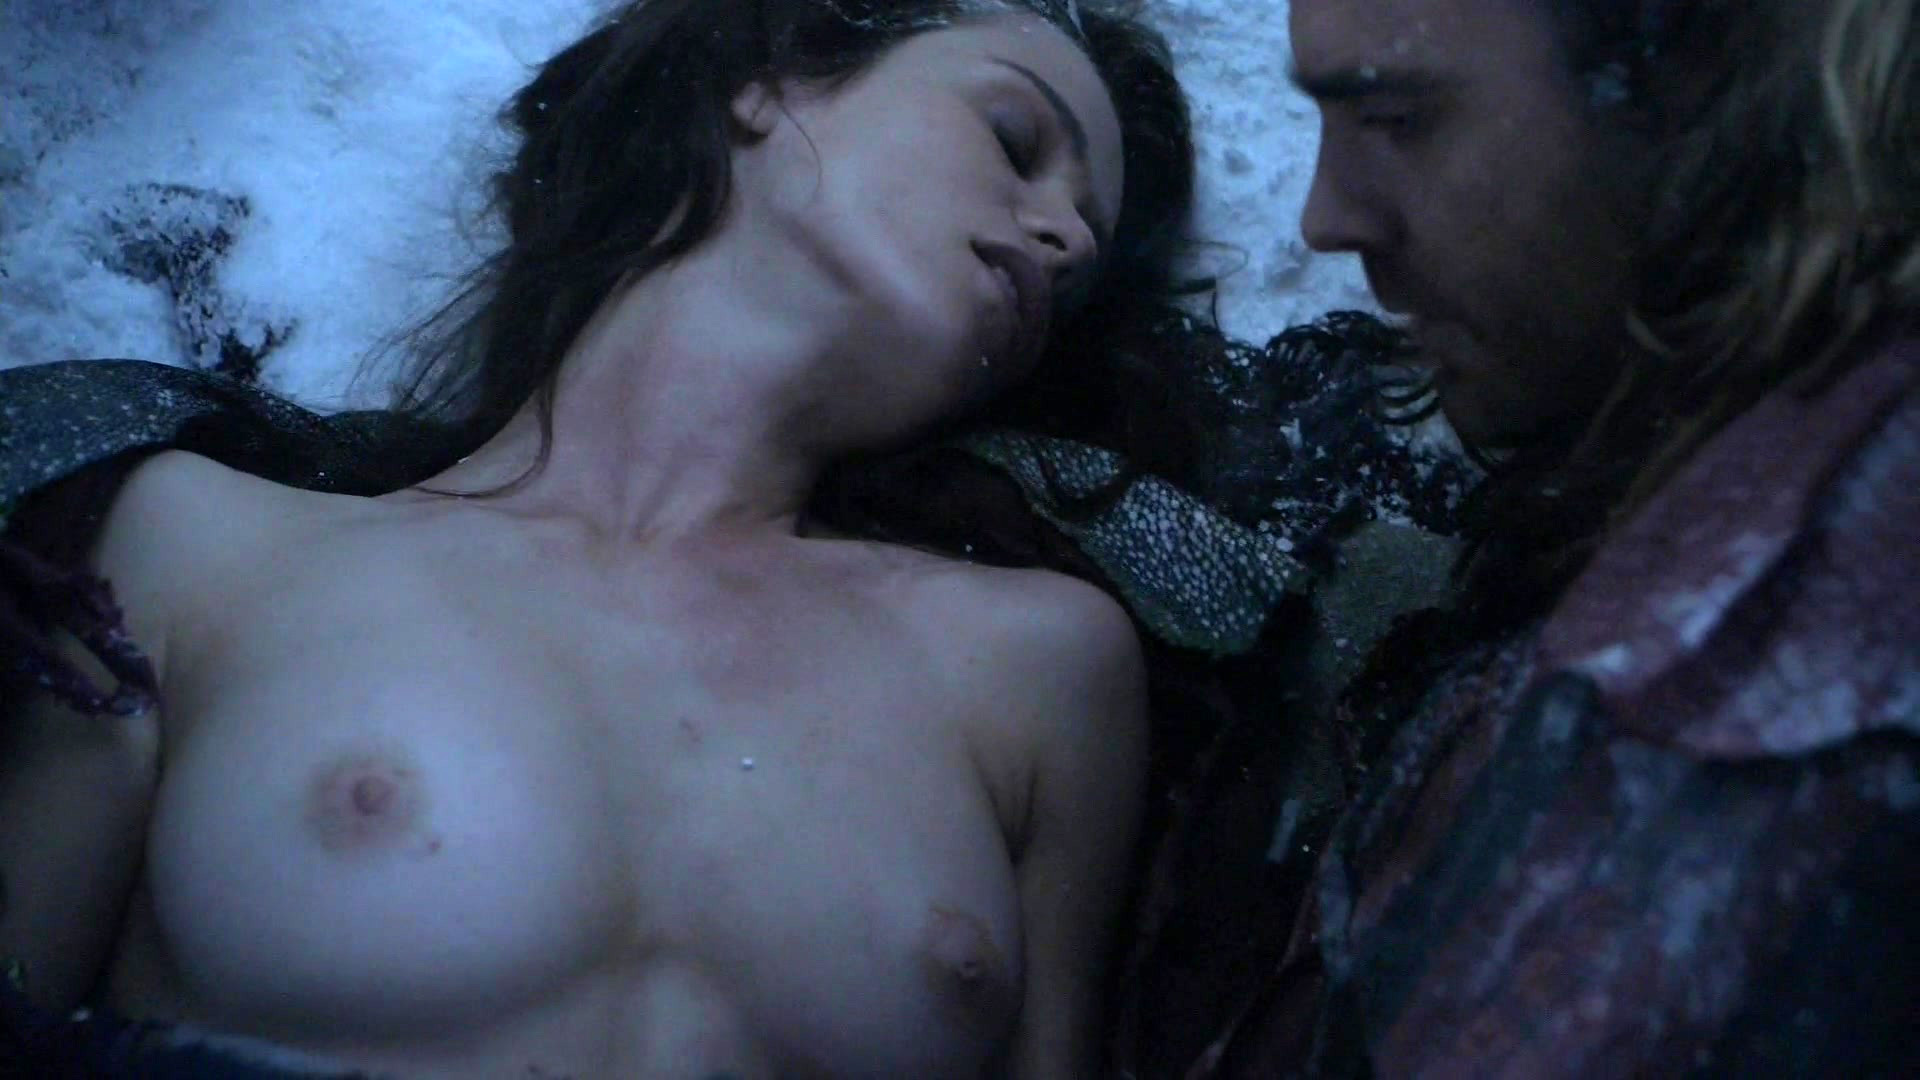 Gwendoline Taylor – Spartacus s03e07 (2013) HD 1080i